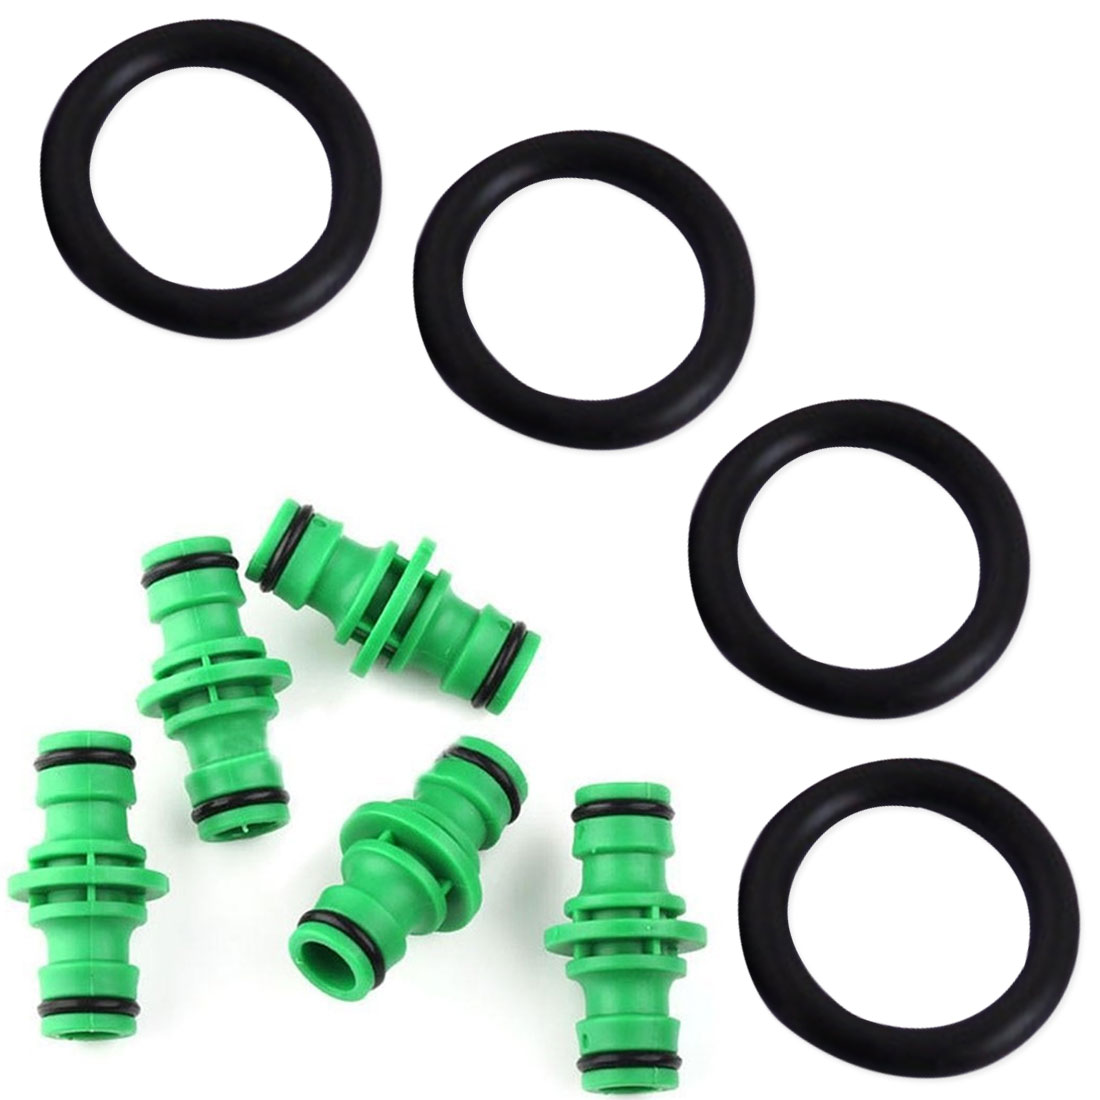 Garden Accessories Watering Irrigation 50PCS Gardening Tools And Equipment O-Type Waterproof Rings Pipe Plastic Joint Sealing R